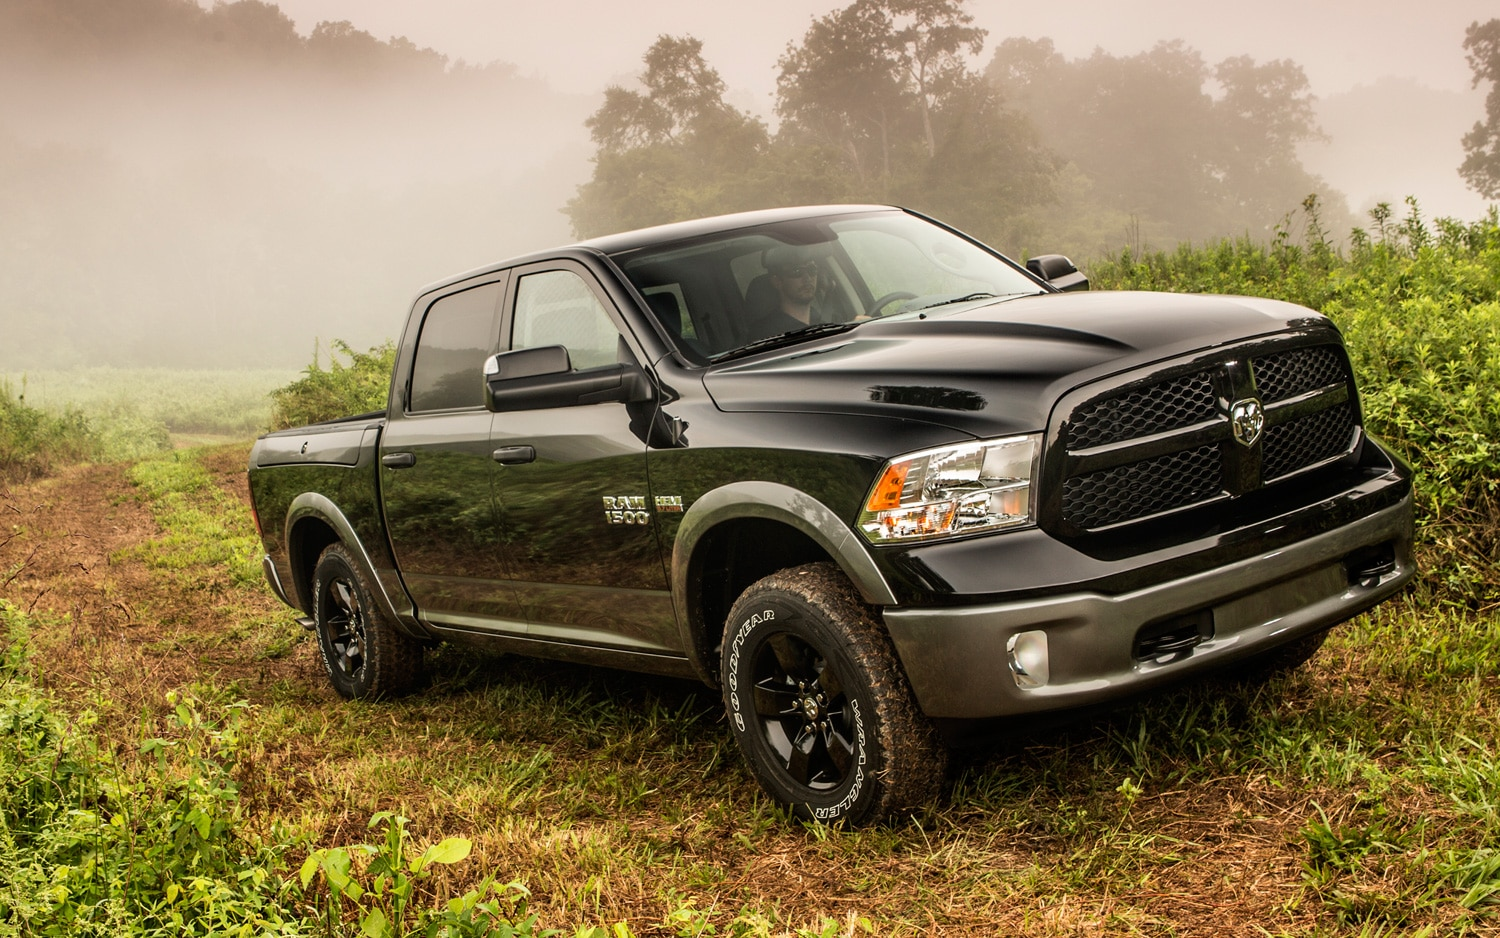 2013 Ram 1500 Front View Off Roading11